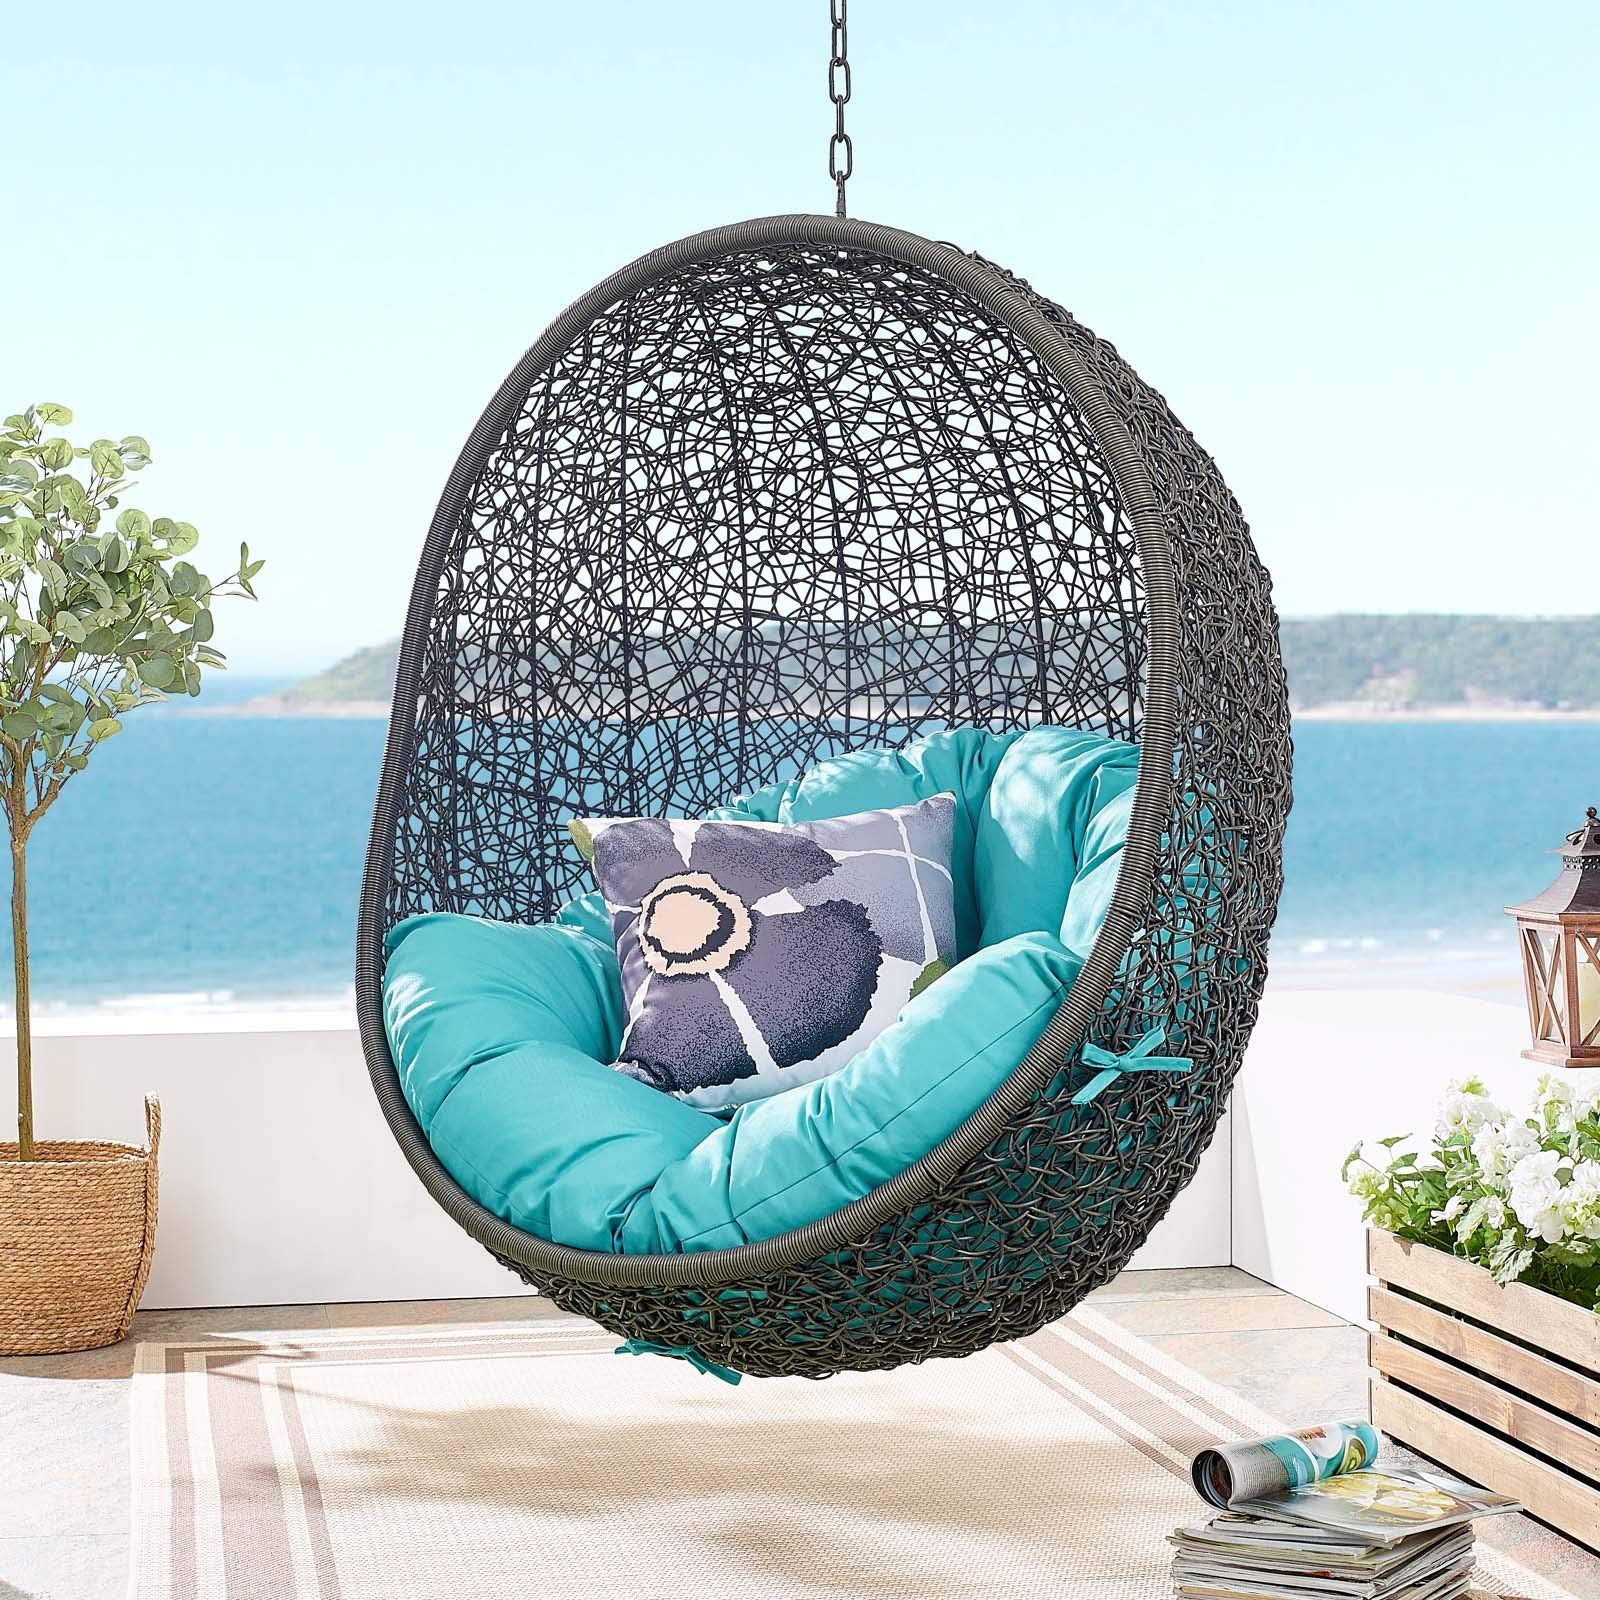 Modway EEI-2273-GRY-TRQ Hide Wicker Rattan Outdoor Patio Porch Lounge Egg Swing Chair Set, With Stand, Gray Turquoise